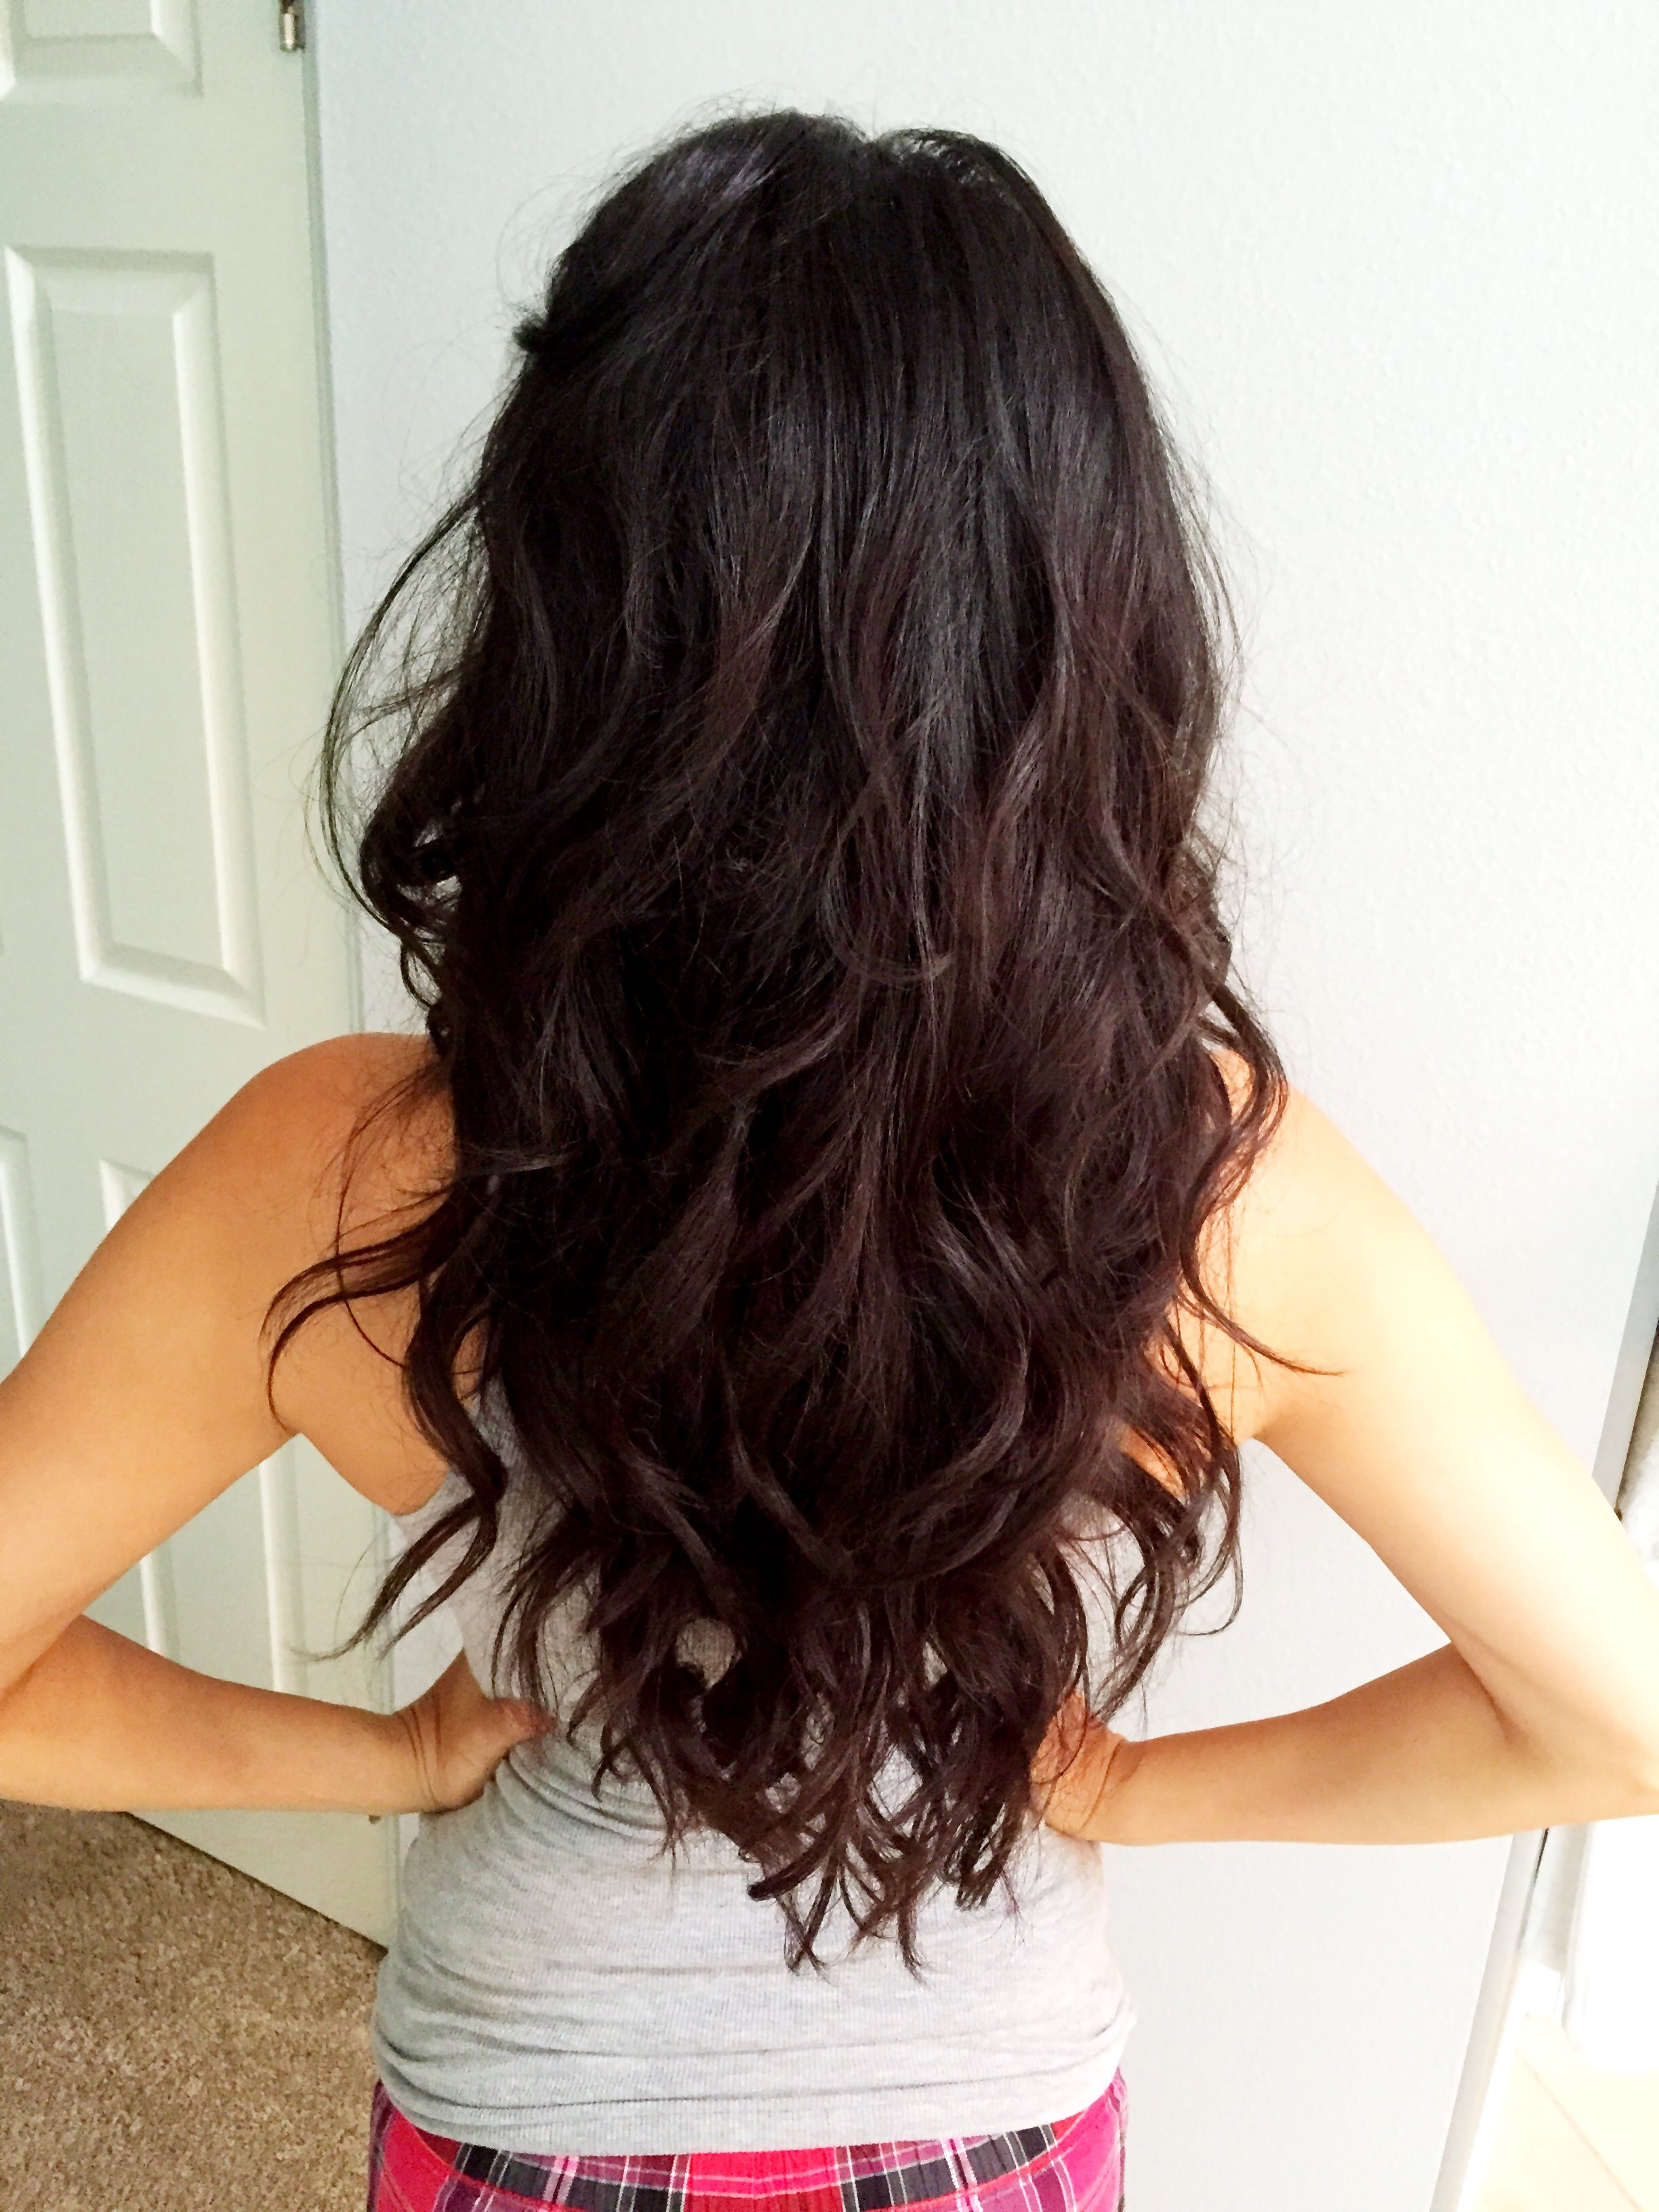 long hair layers, long curly hair, brunette, beach waves